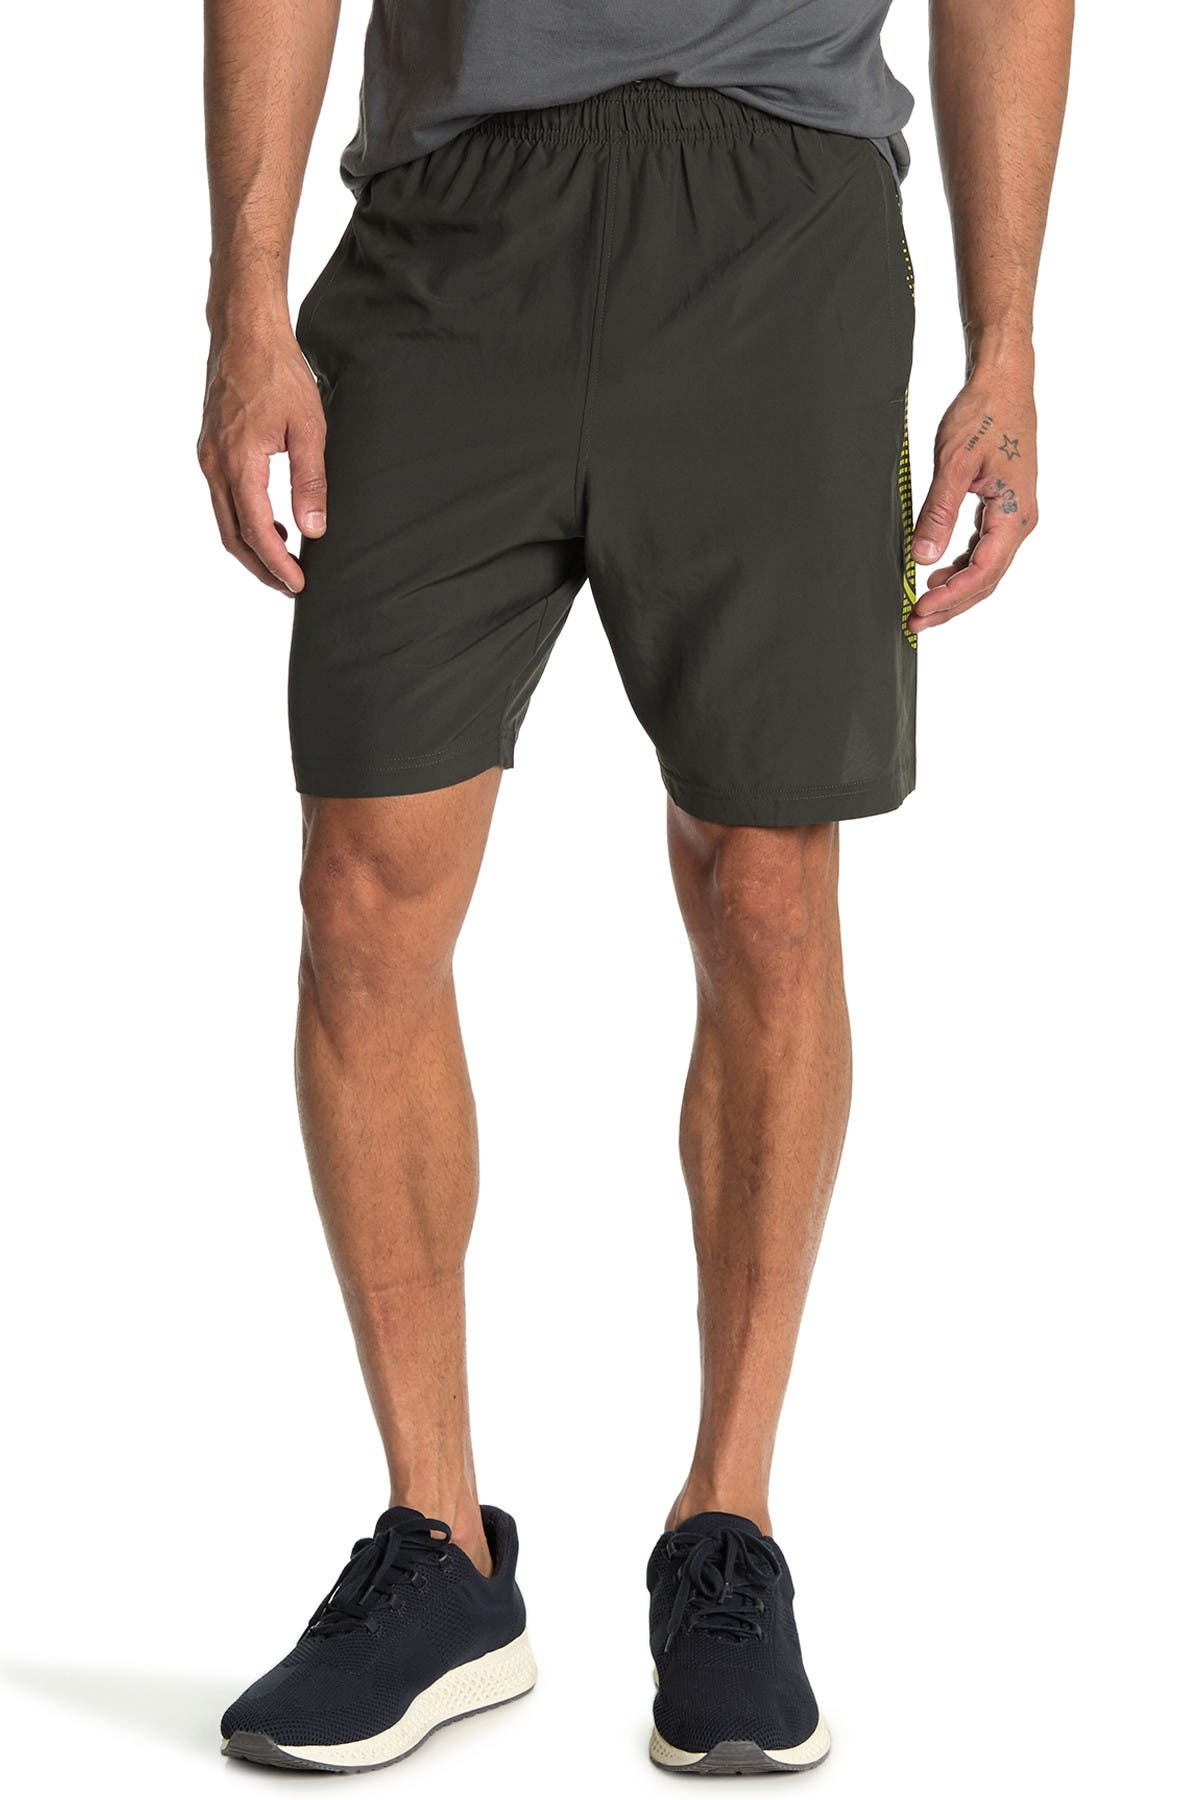 Image of Under Armour Woven Graphic Shorts